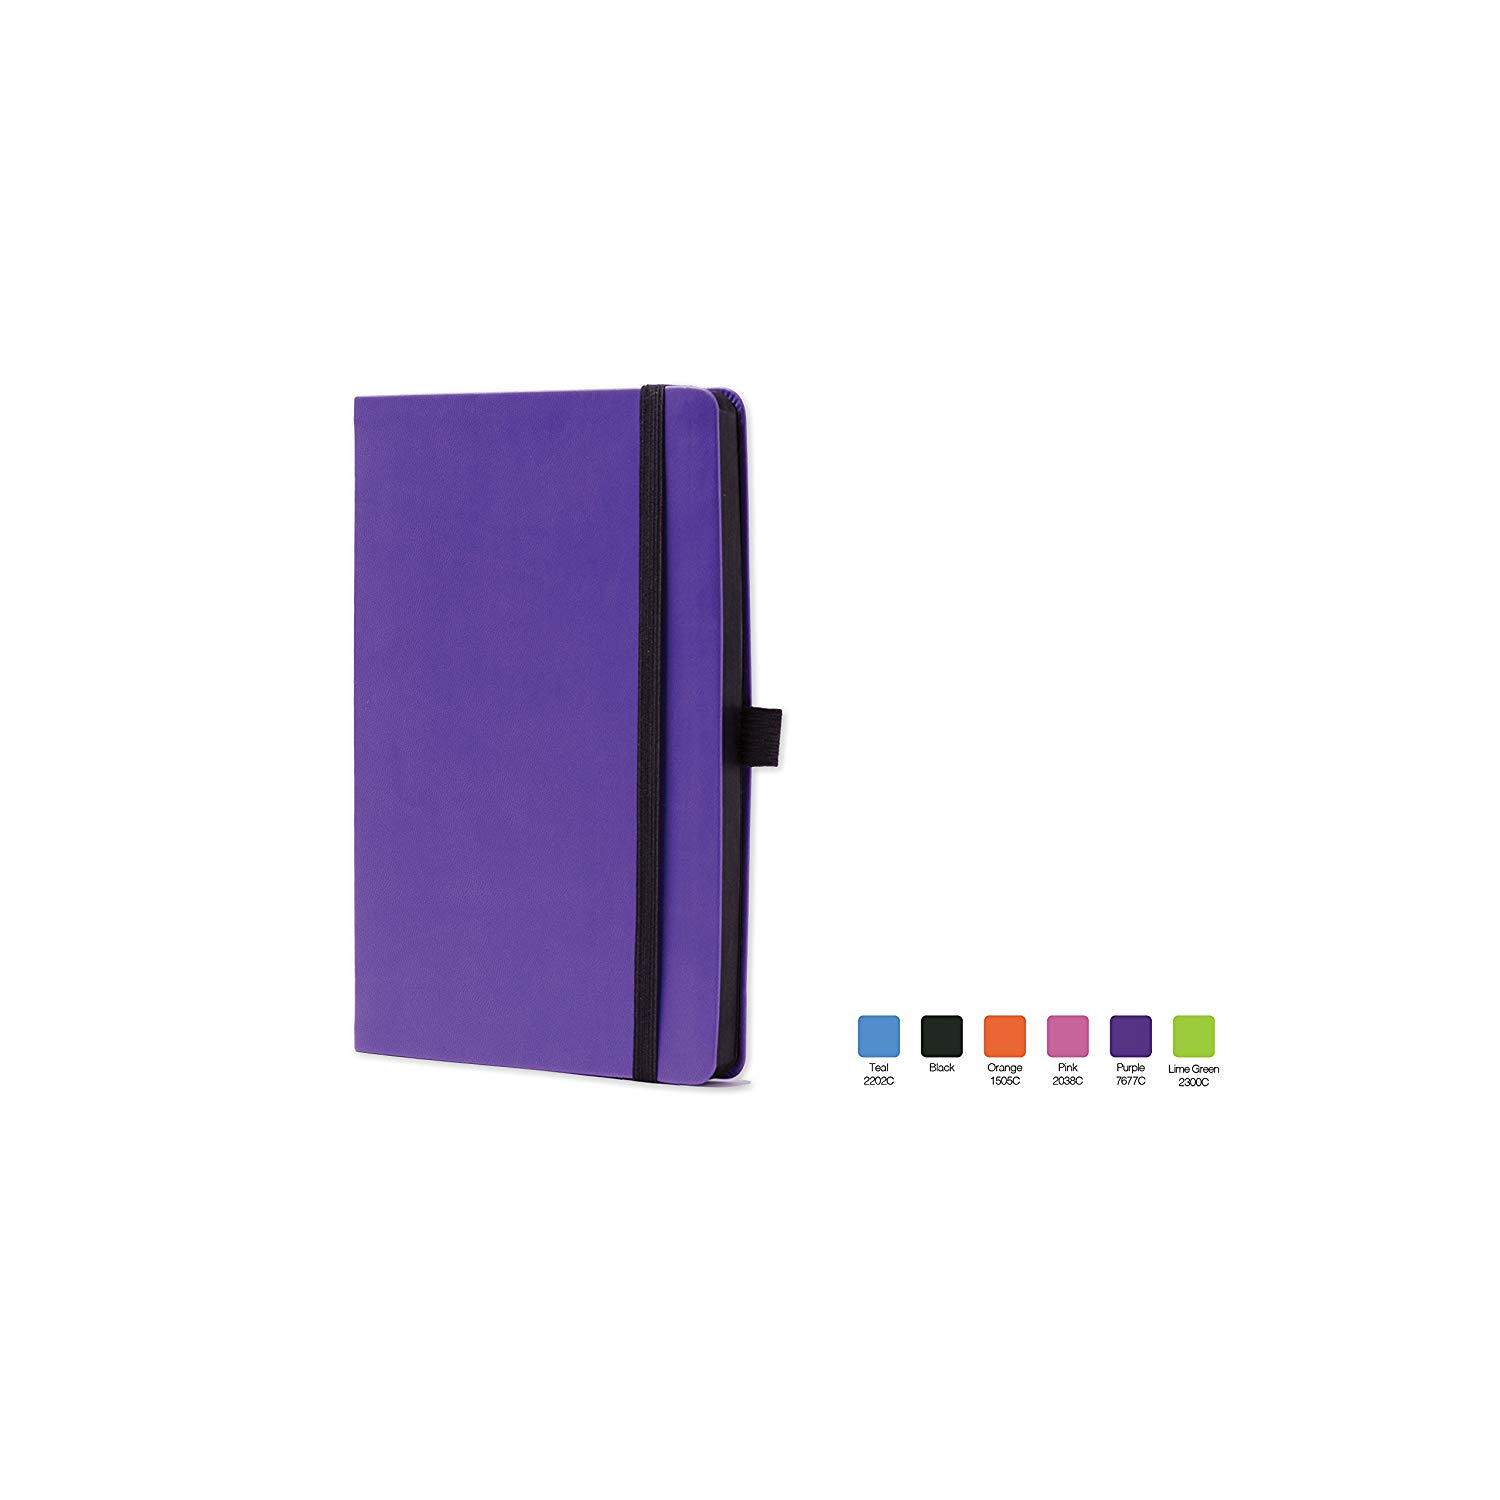 """CALYPSO Ruled, Flexicover Notebook Journal with Premium Paper, 192 Lined Pages, Pen loop, Bookmark ribbon, Gusseted back pocket, Purple Cover, Size 5.5"""" x 8.5"""""""